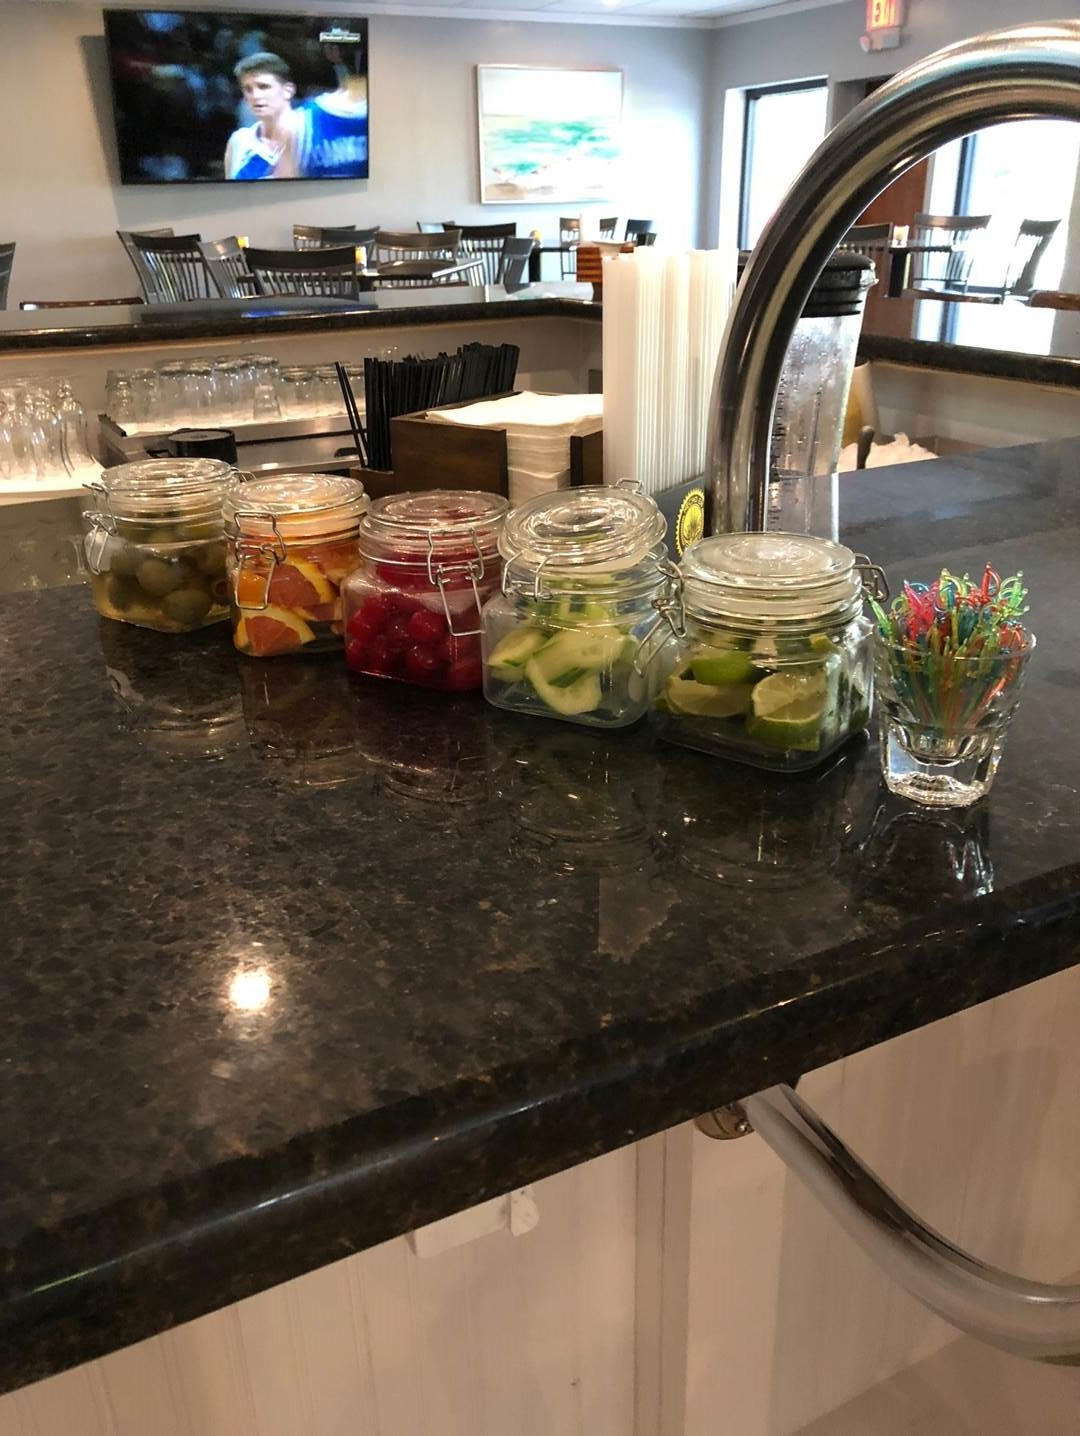 countertop with jars of vegetables